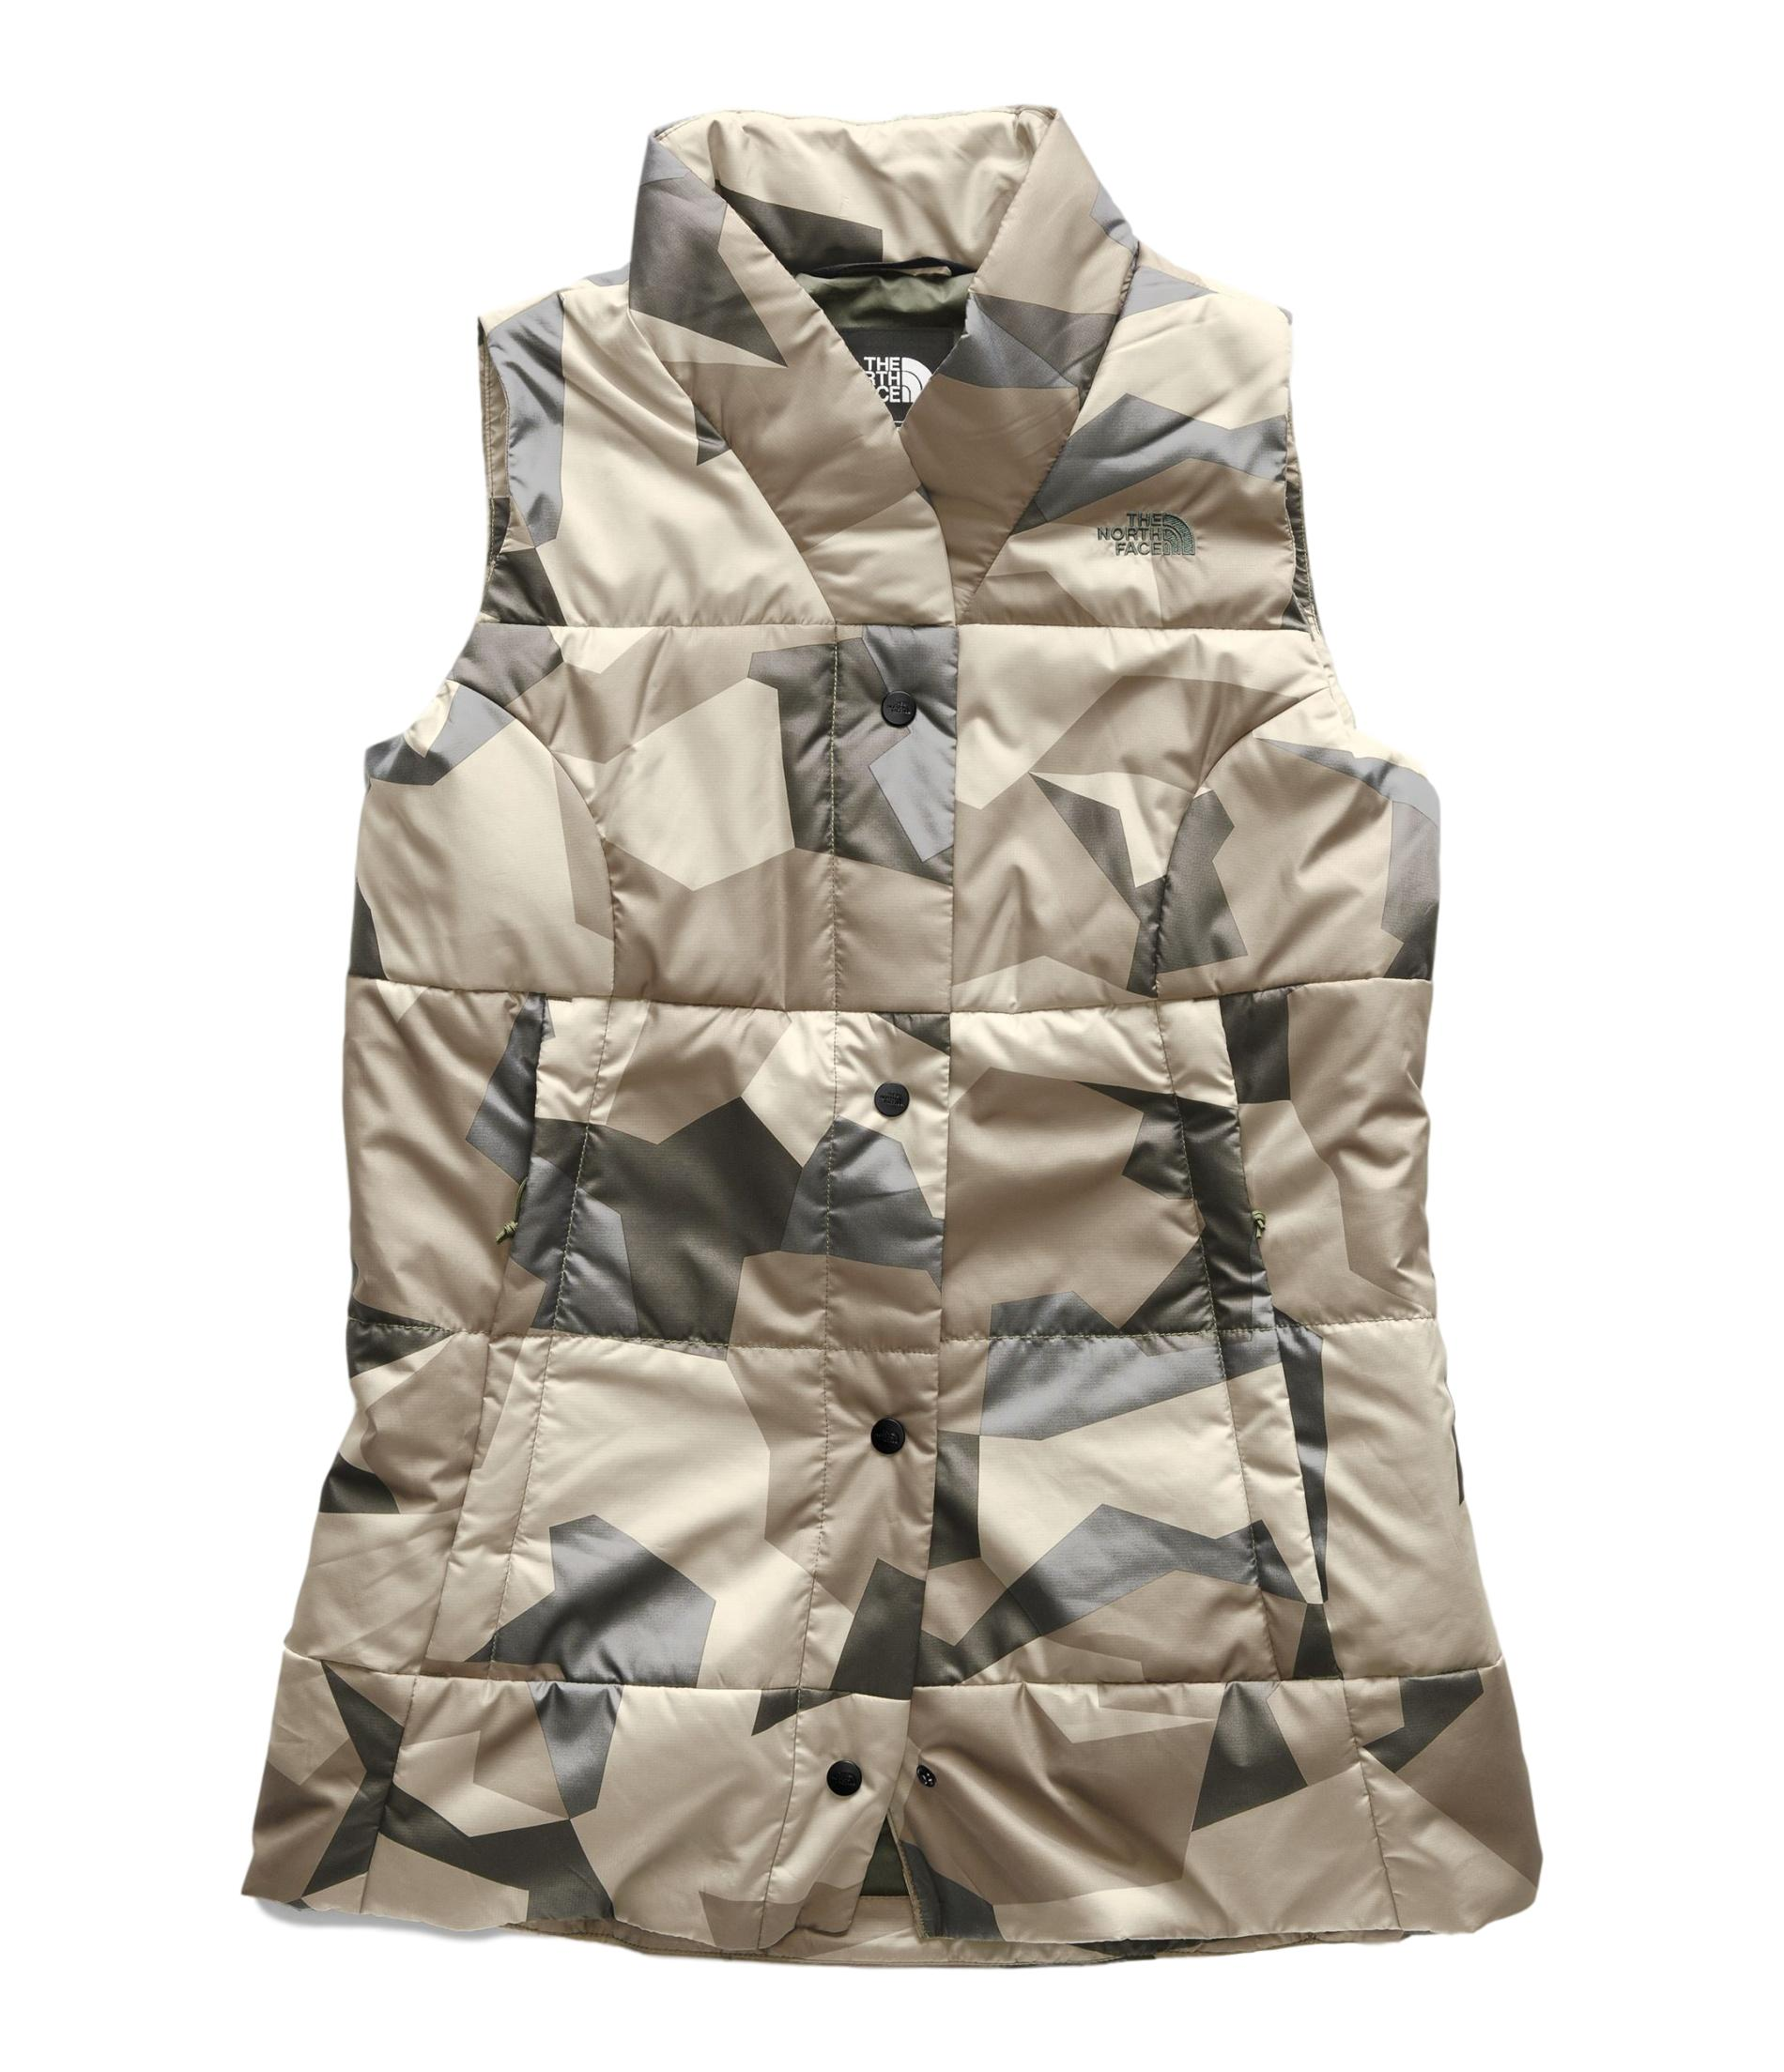 ac9830737 The North Face Femtastic Insulated Vest - Women's